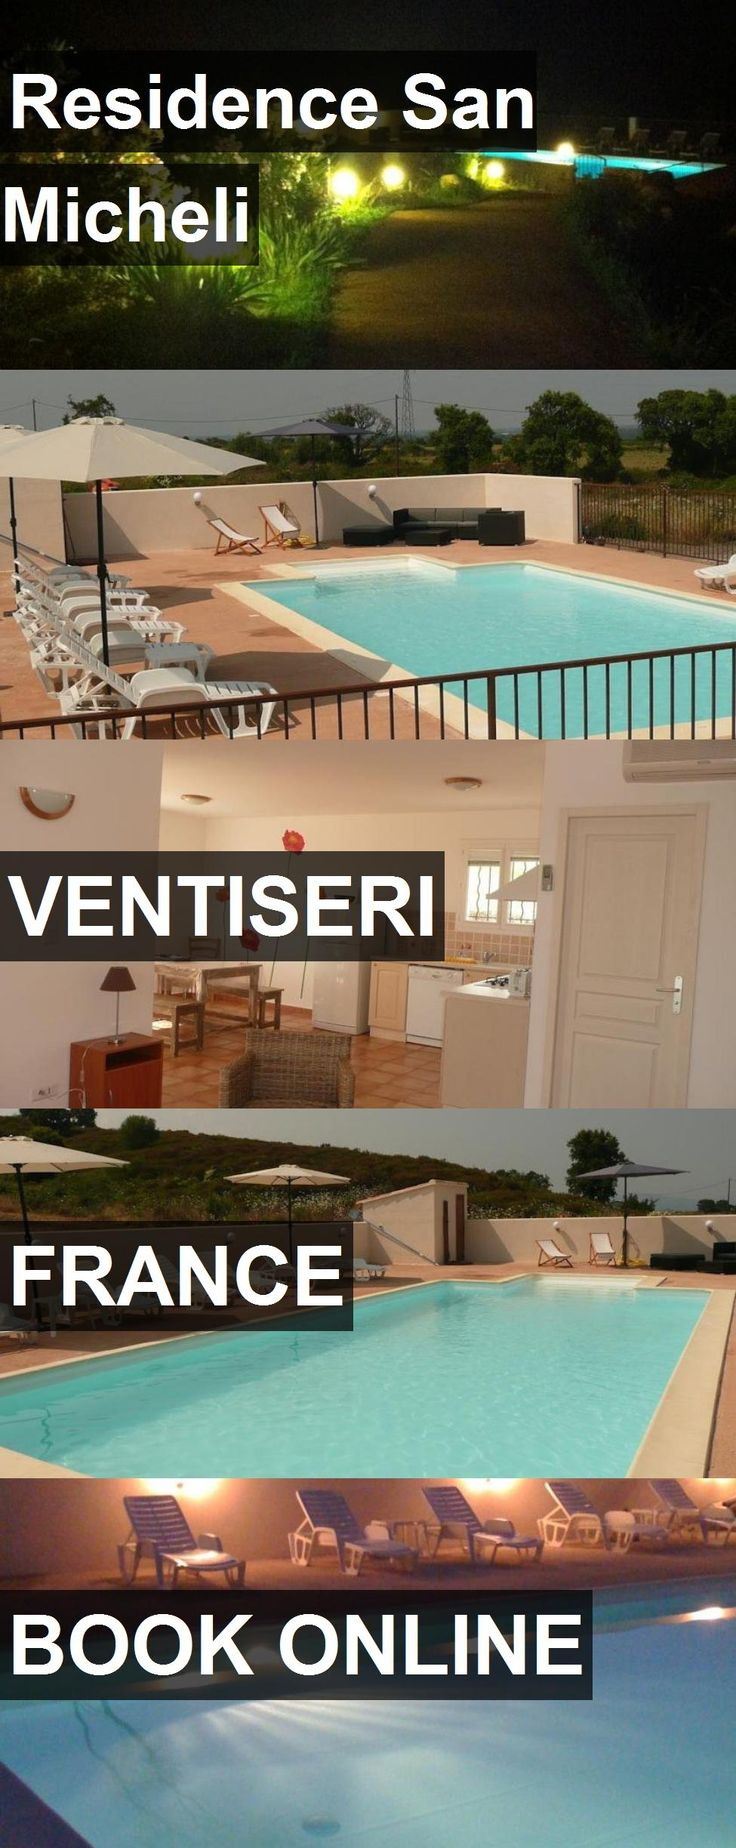 Hotel Residence San Micheli in Ventiseri, France. For more information, photos, reviews and best prices please follow the link. #France #Ventiseri #travel #vacation #hotel